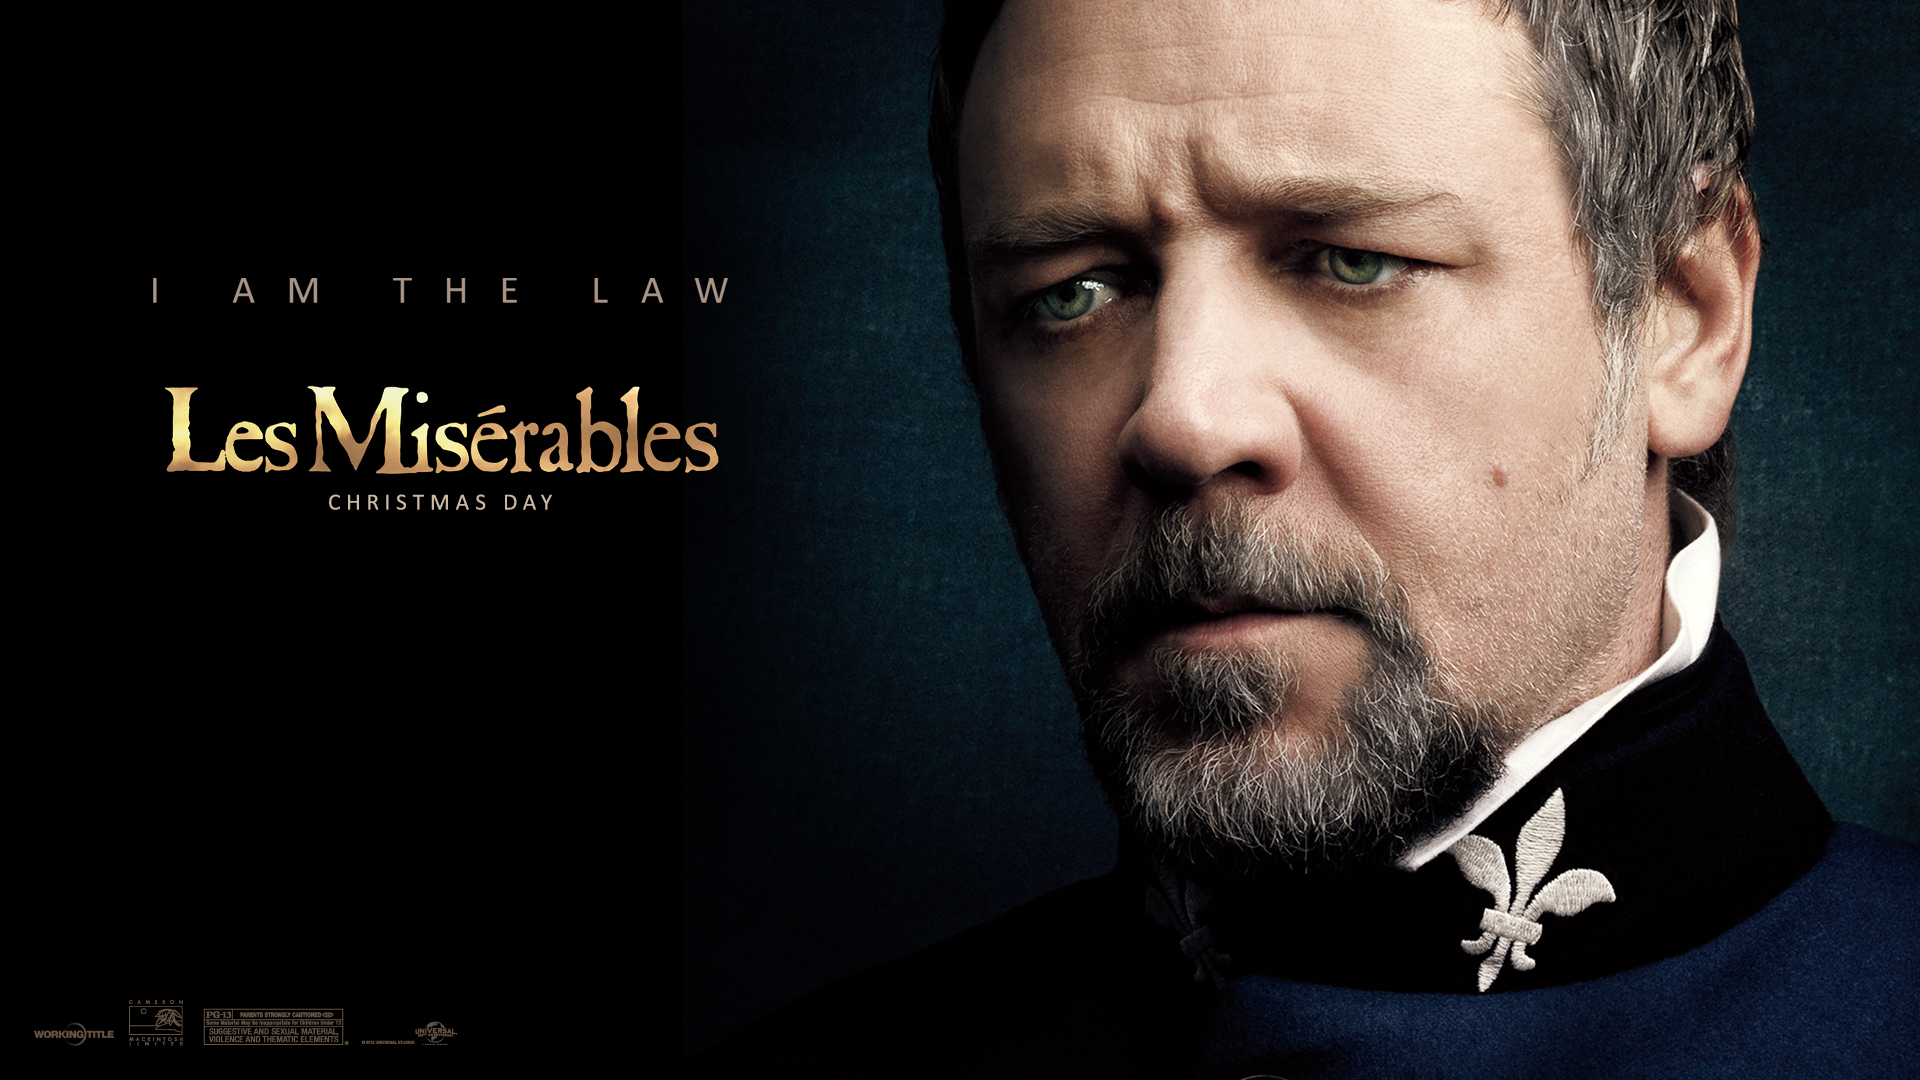 Les miserables 2012 movie les miserables movie wallpapers